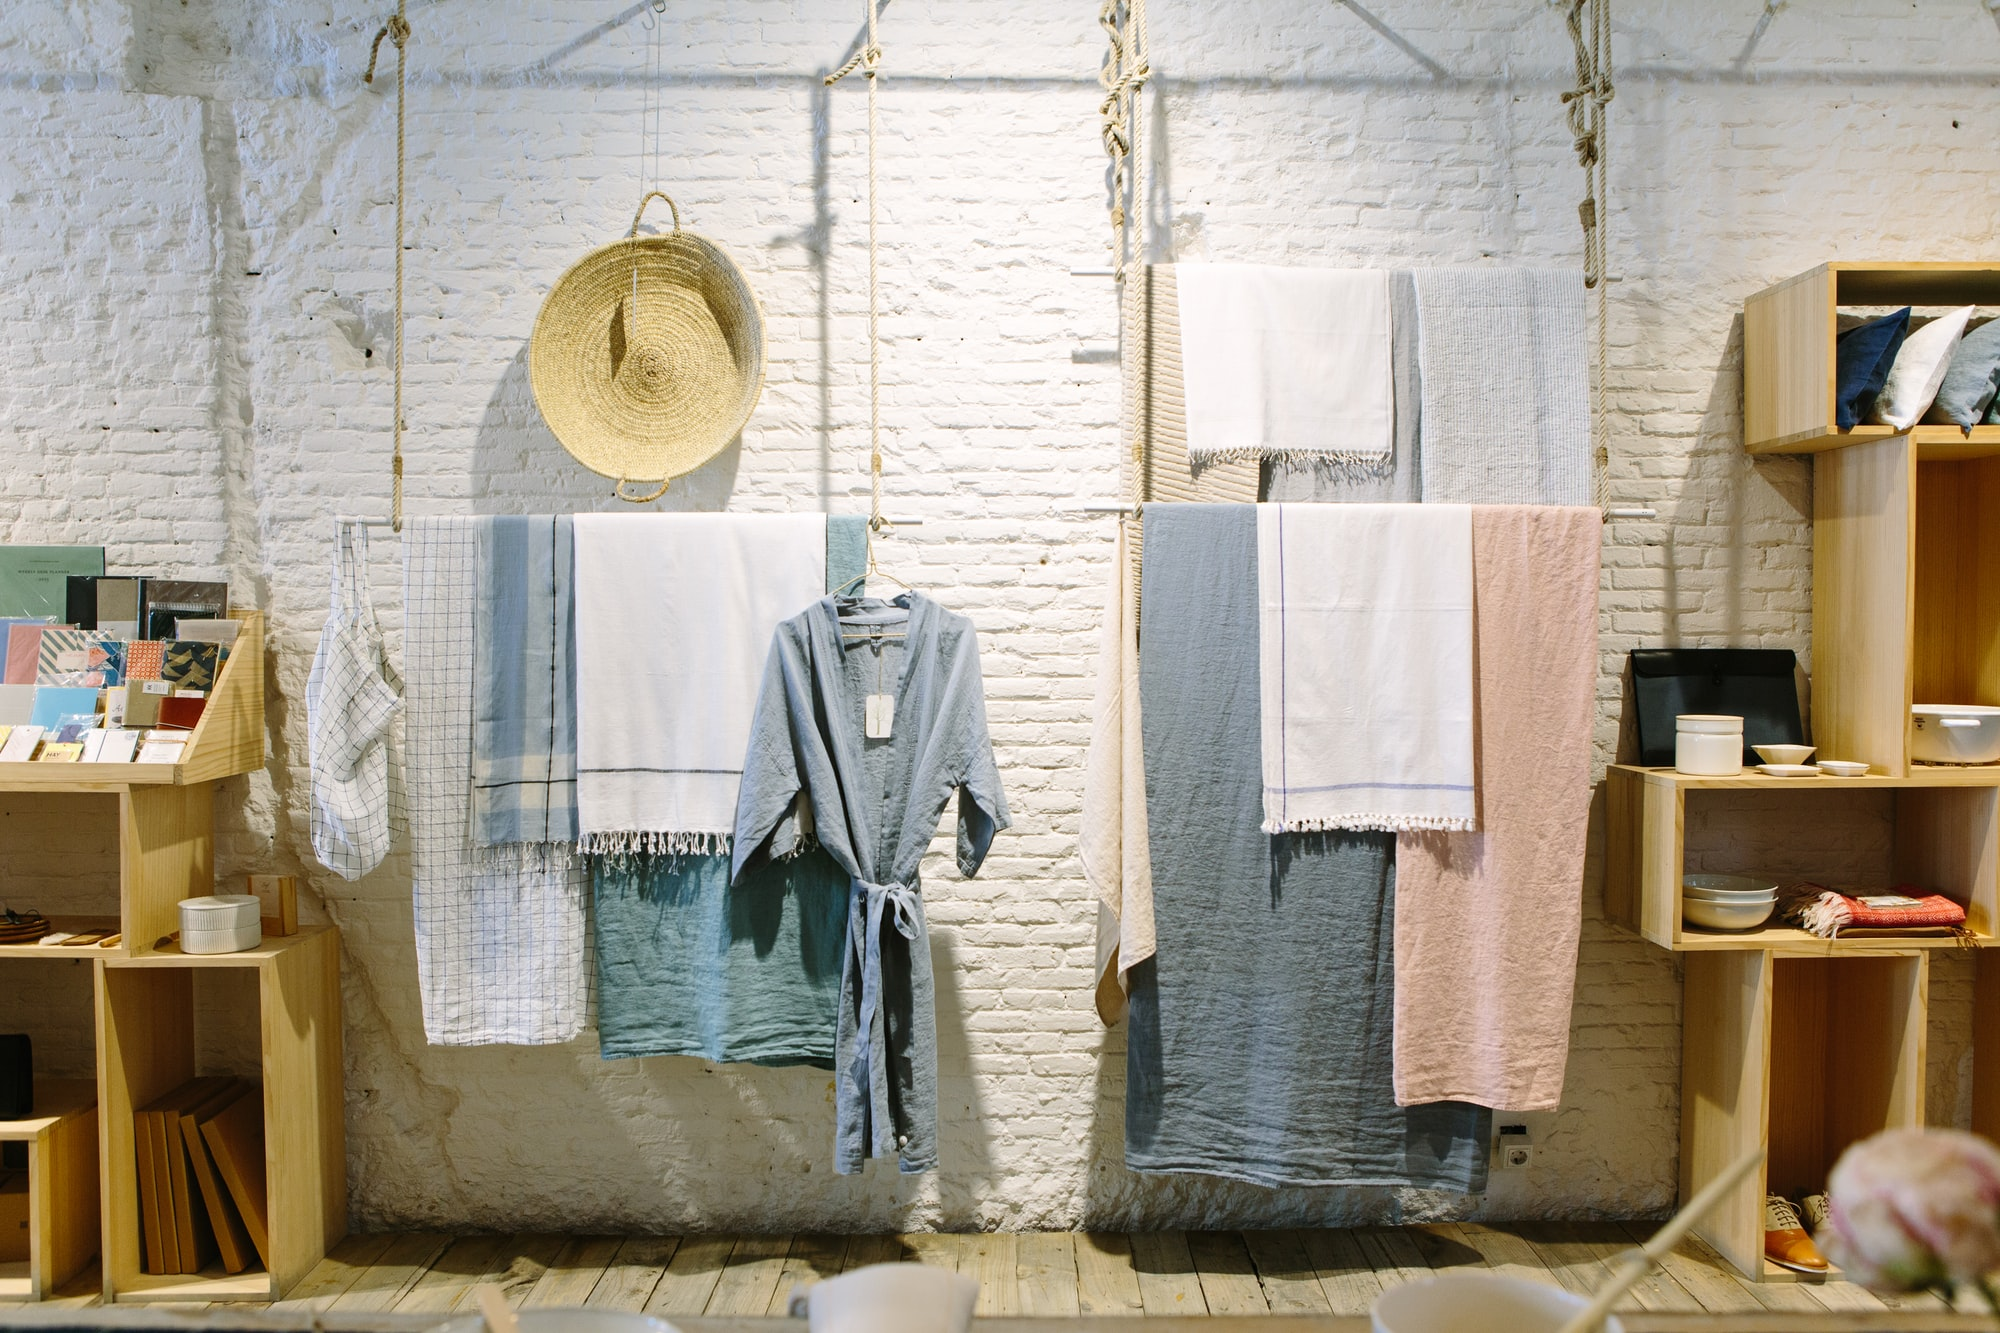 Towels and clothes with SKUs on lines